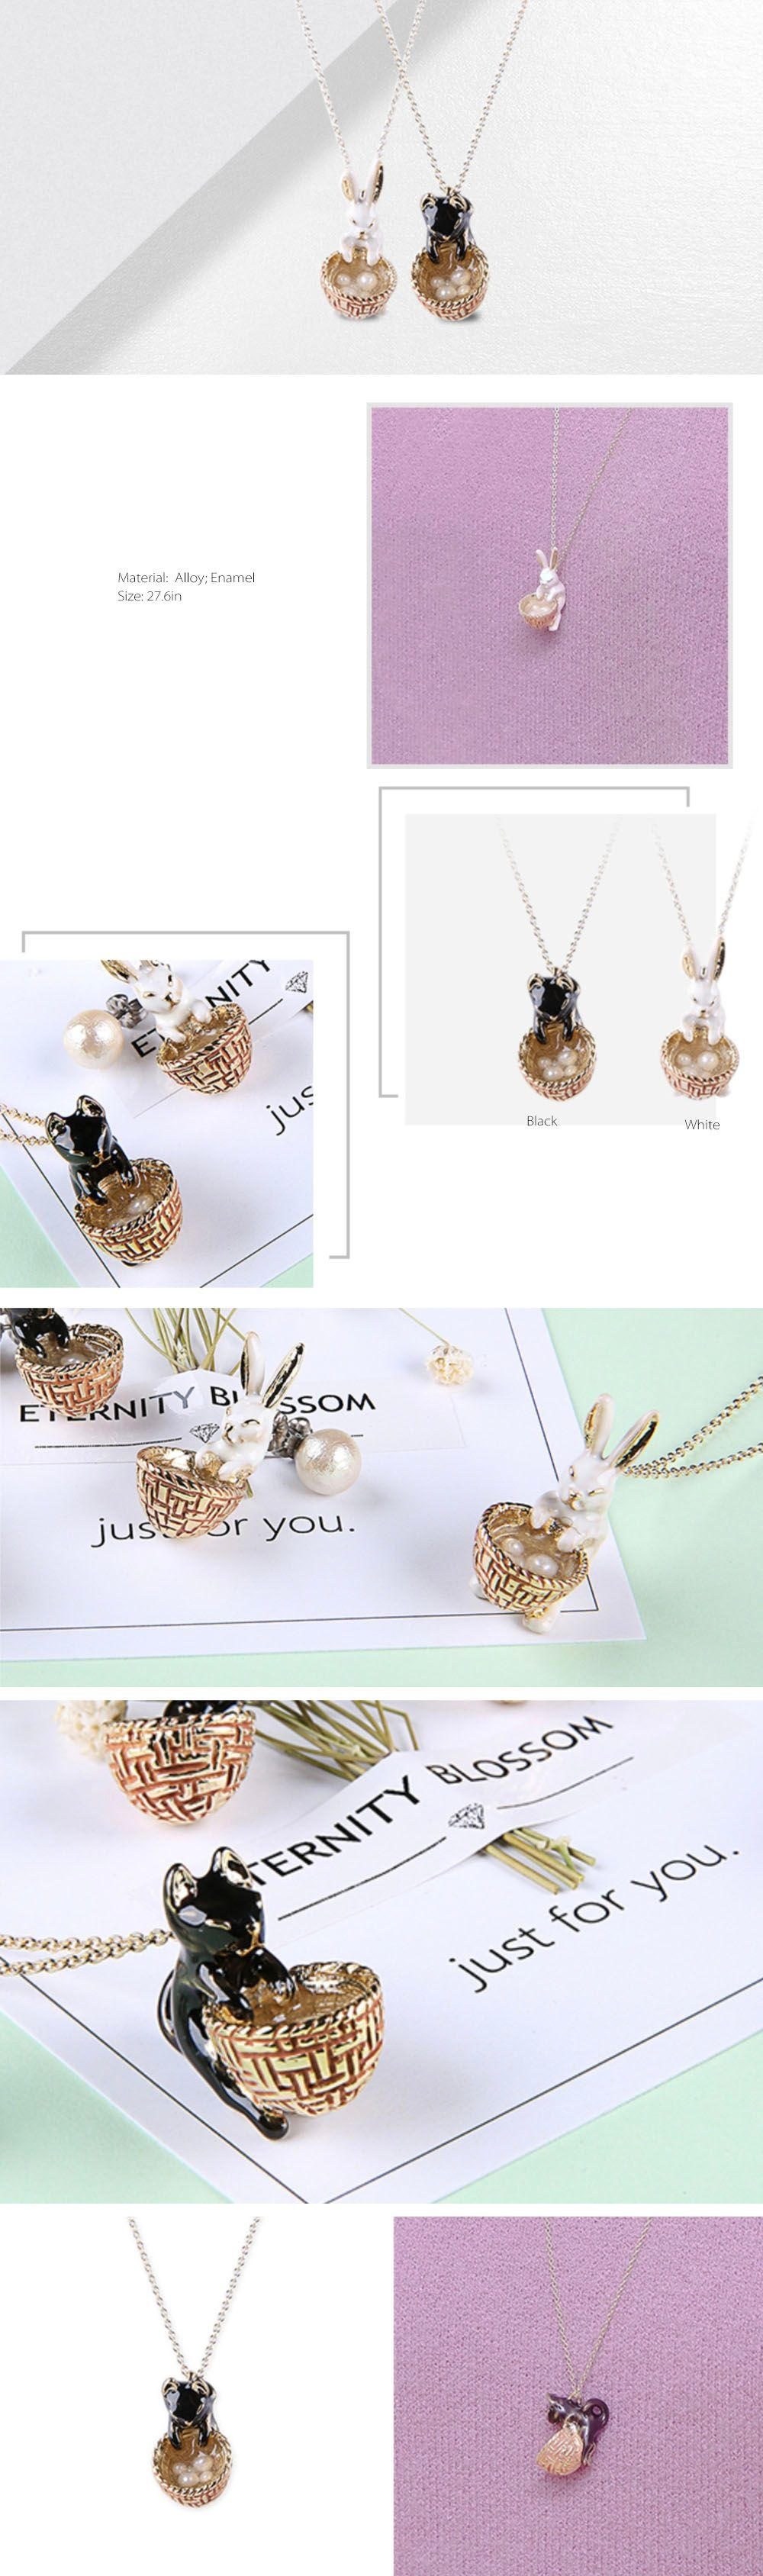 Cute Animal Necklace Just For You